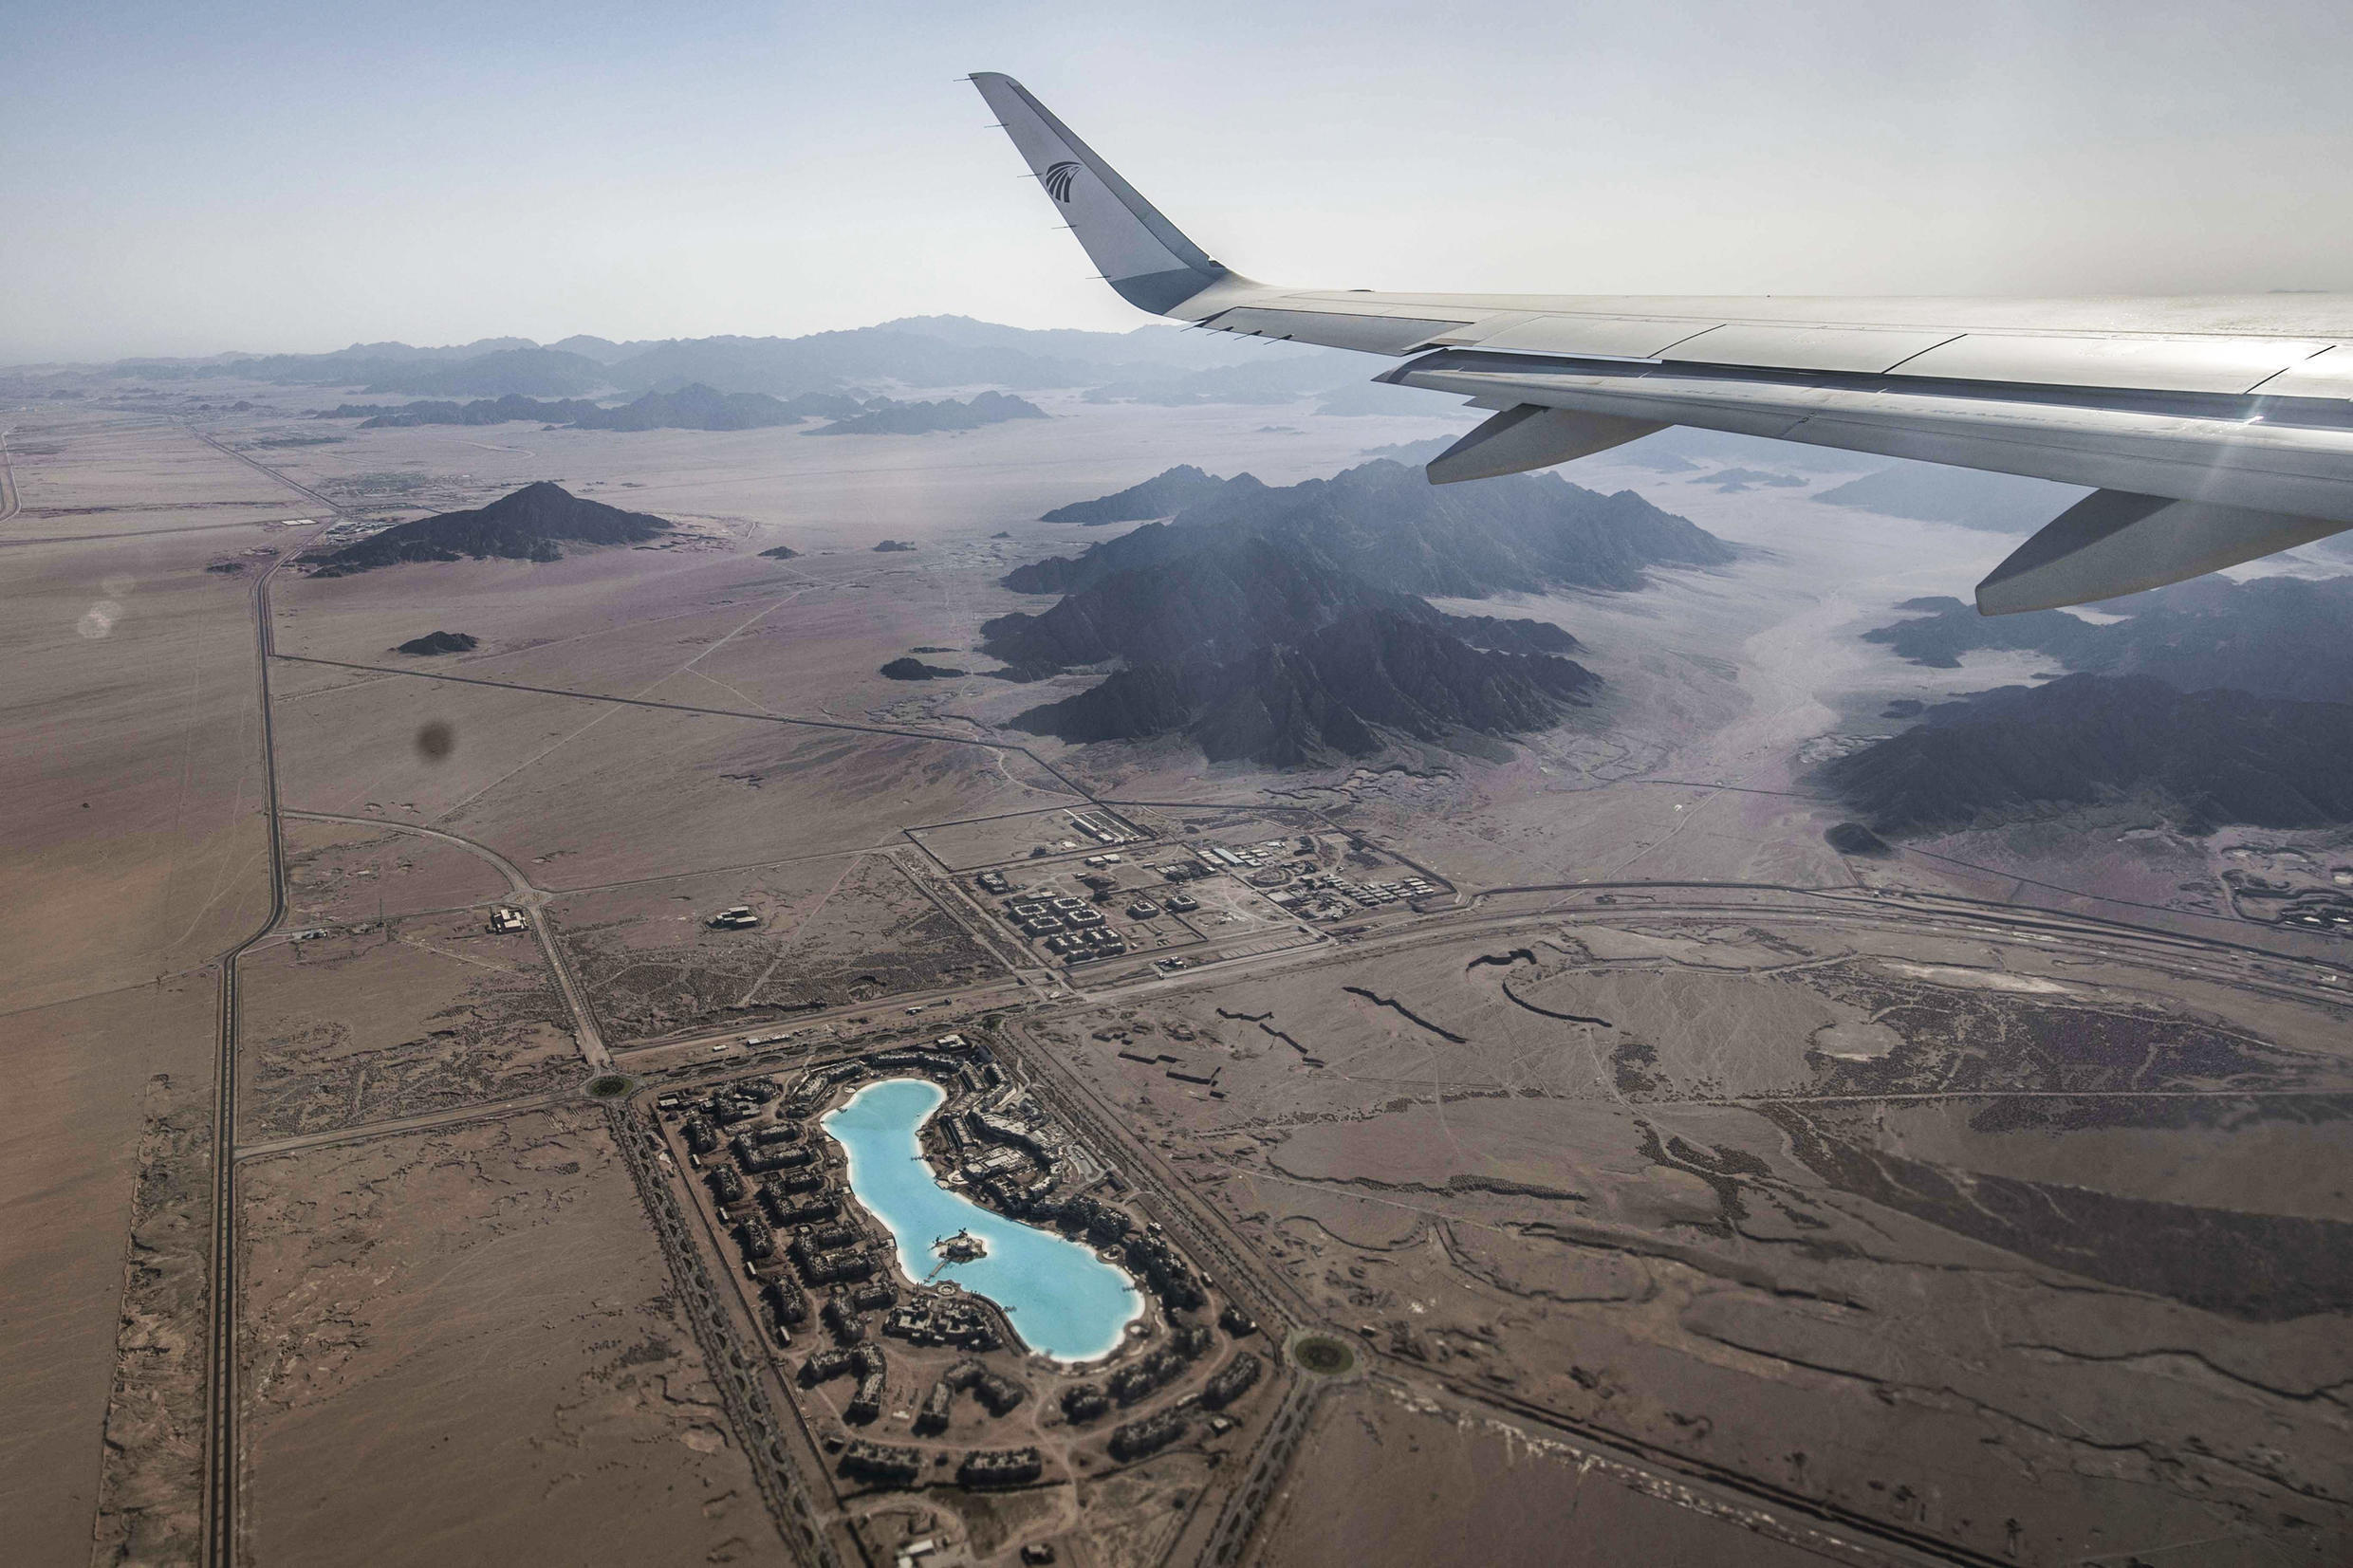 A plane passes over a Sharm el-Sheikh resort near the southern tip of the Egypt's Sinai peninsula in June of this year